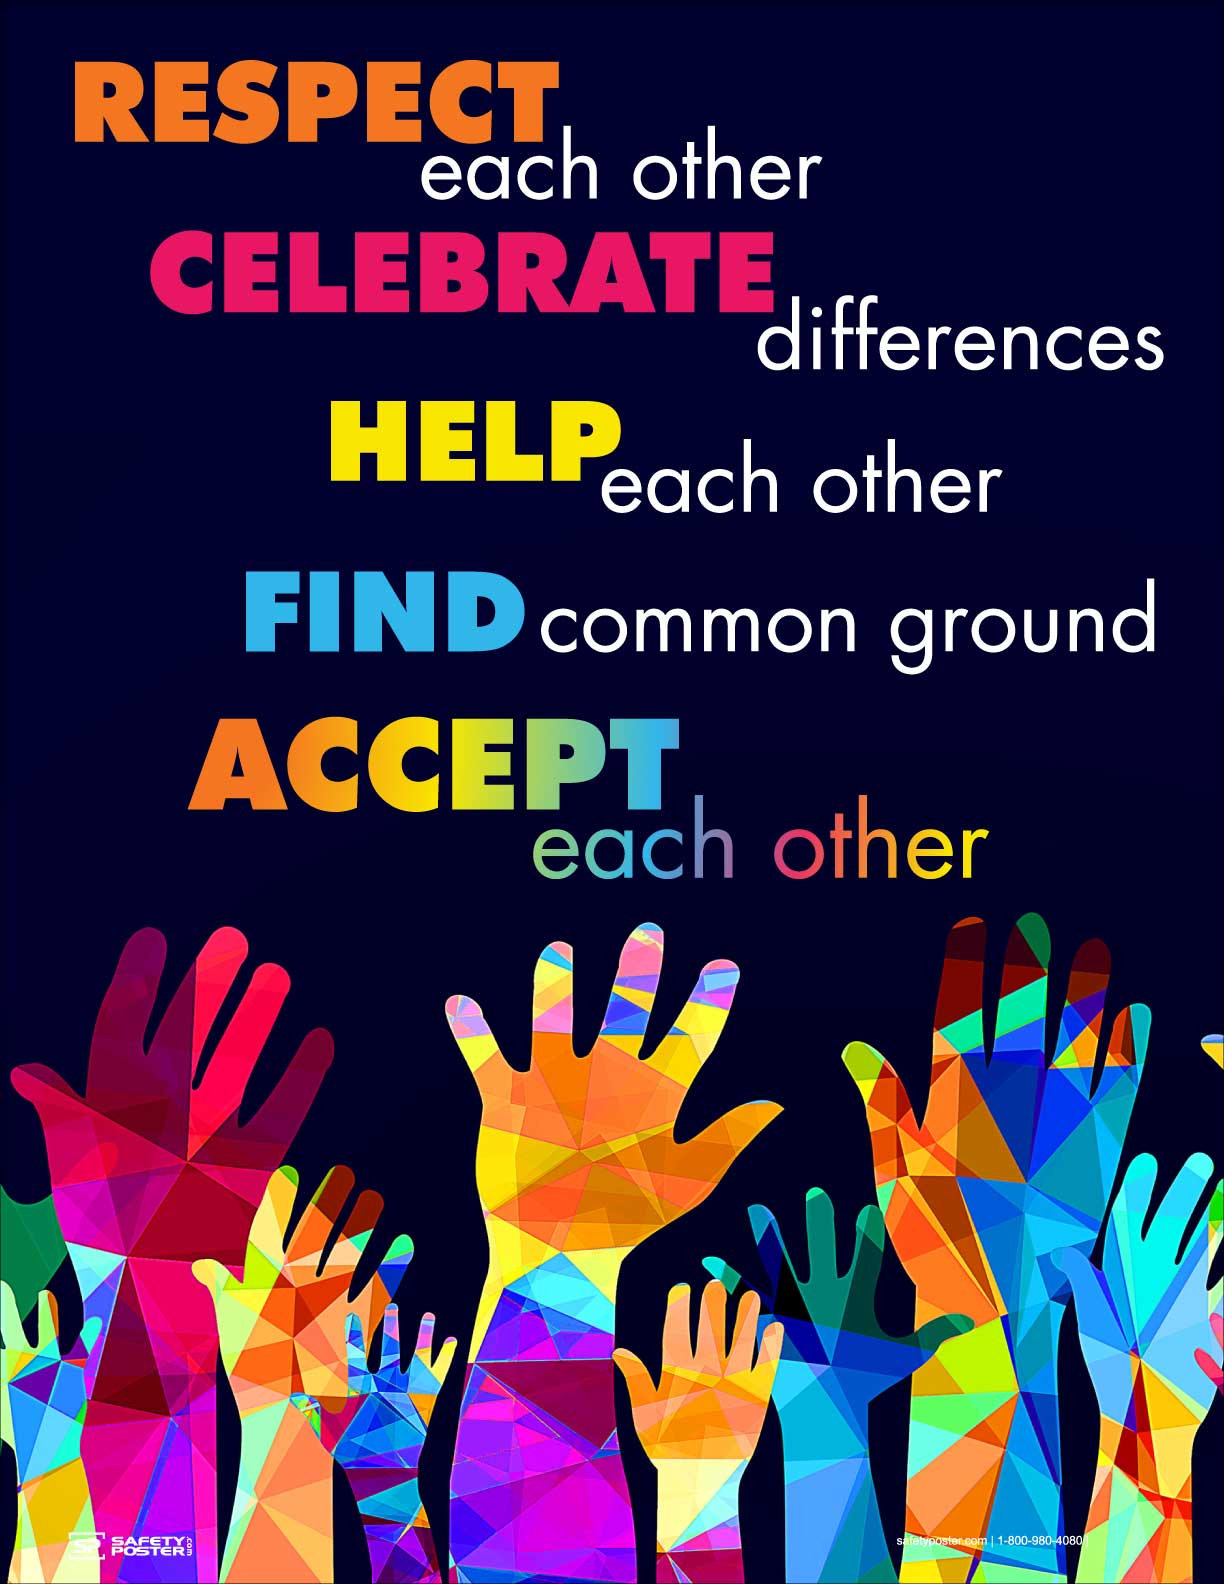 RESPECT Each Other ACCEPT Each Other - Safety Poster